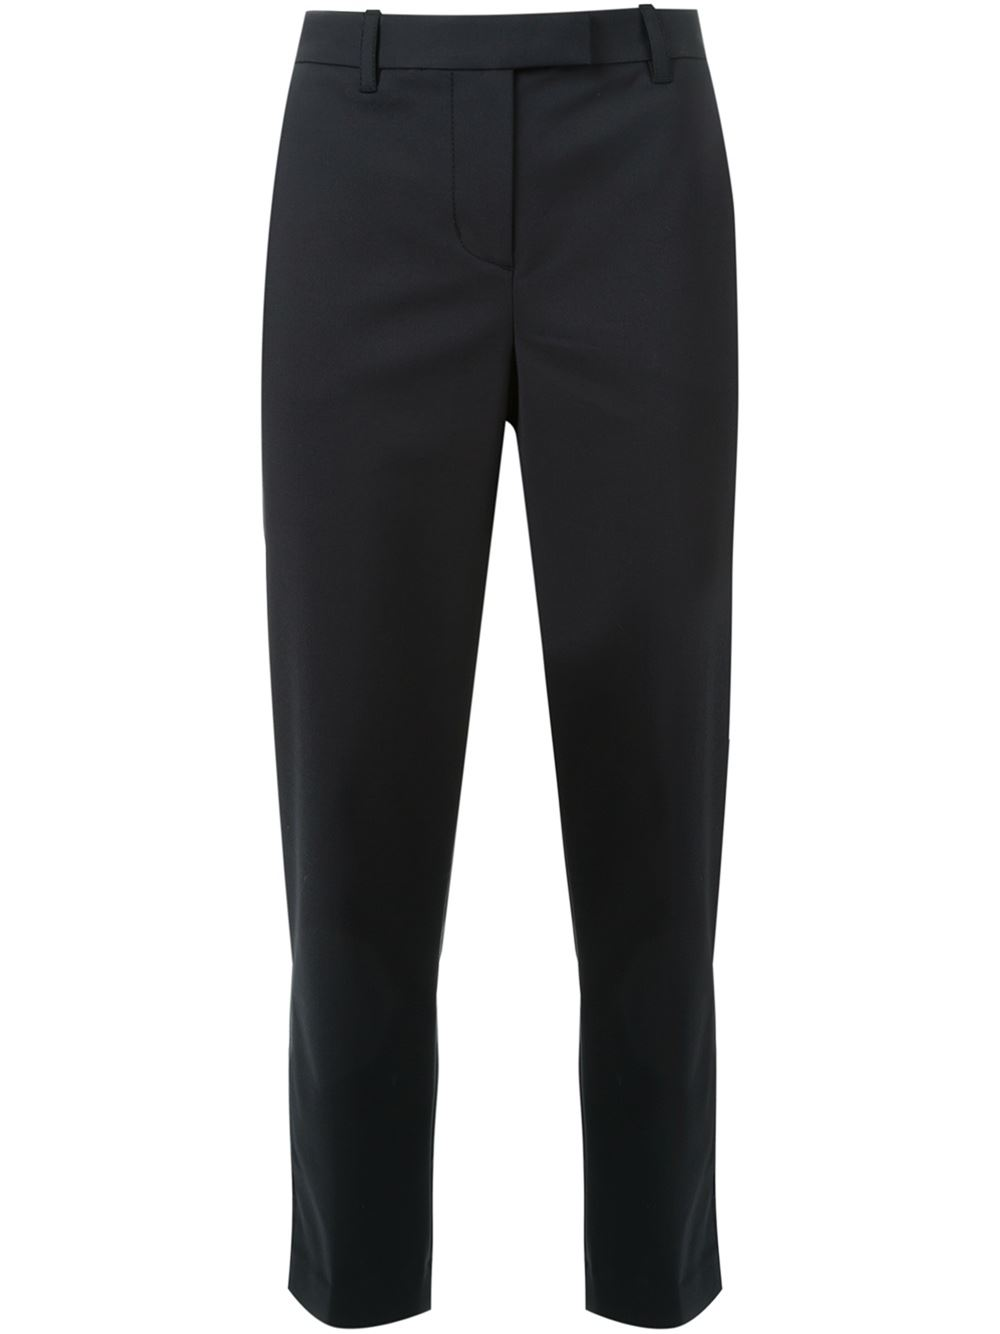 3.1 Phillip Lim PANTS